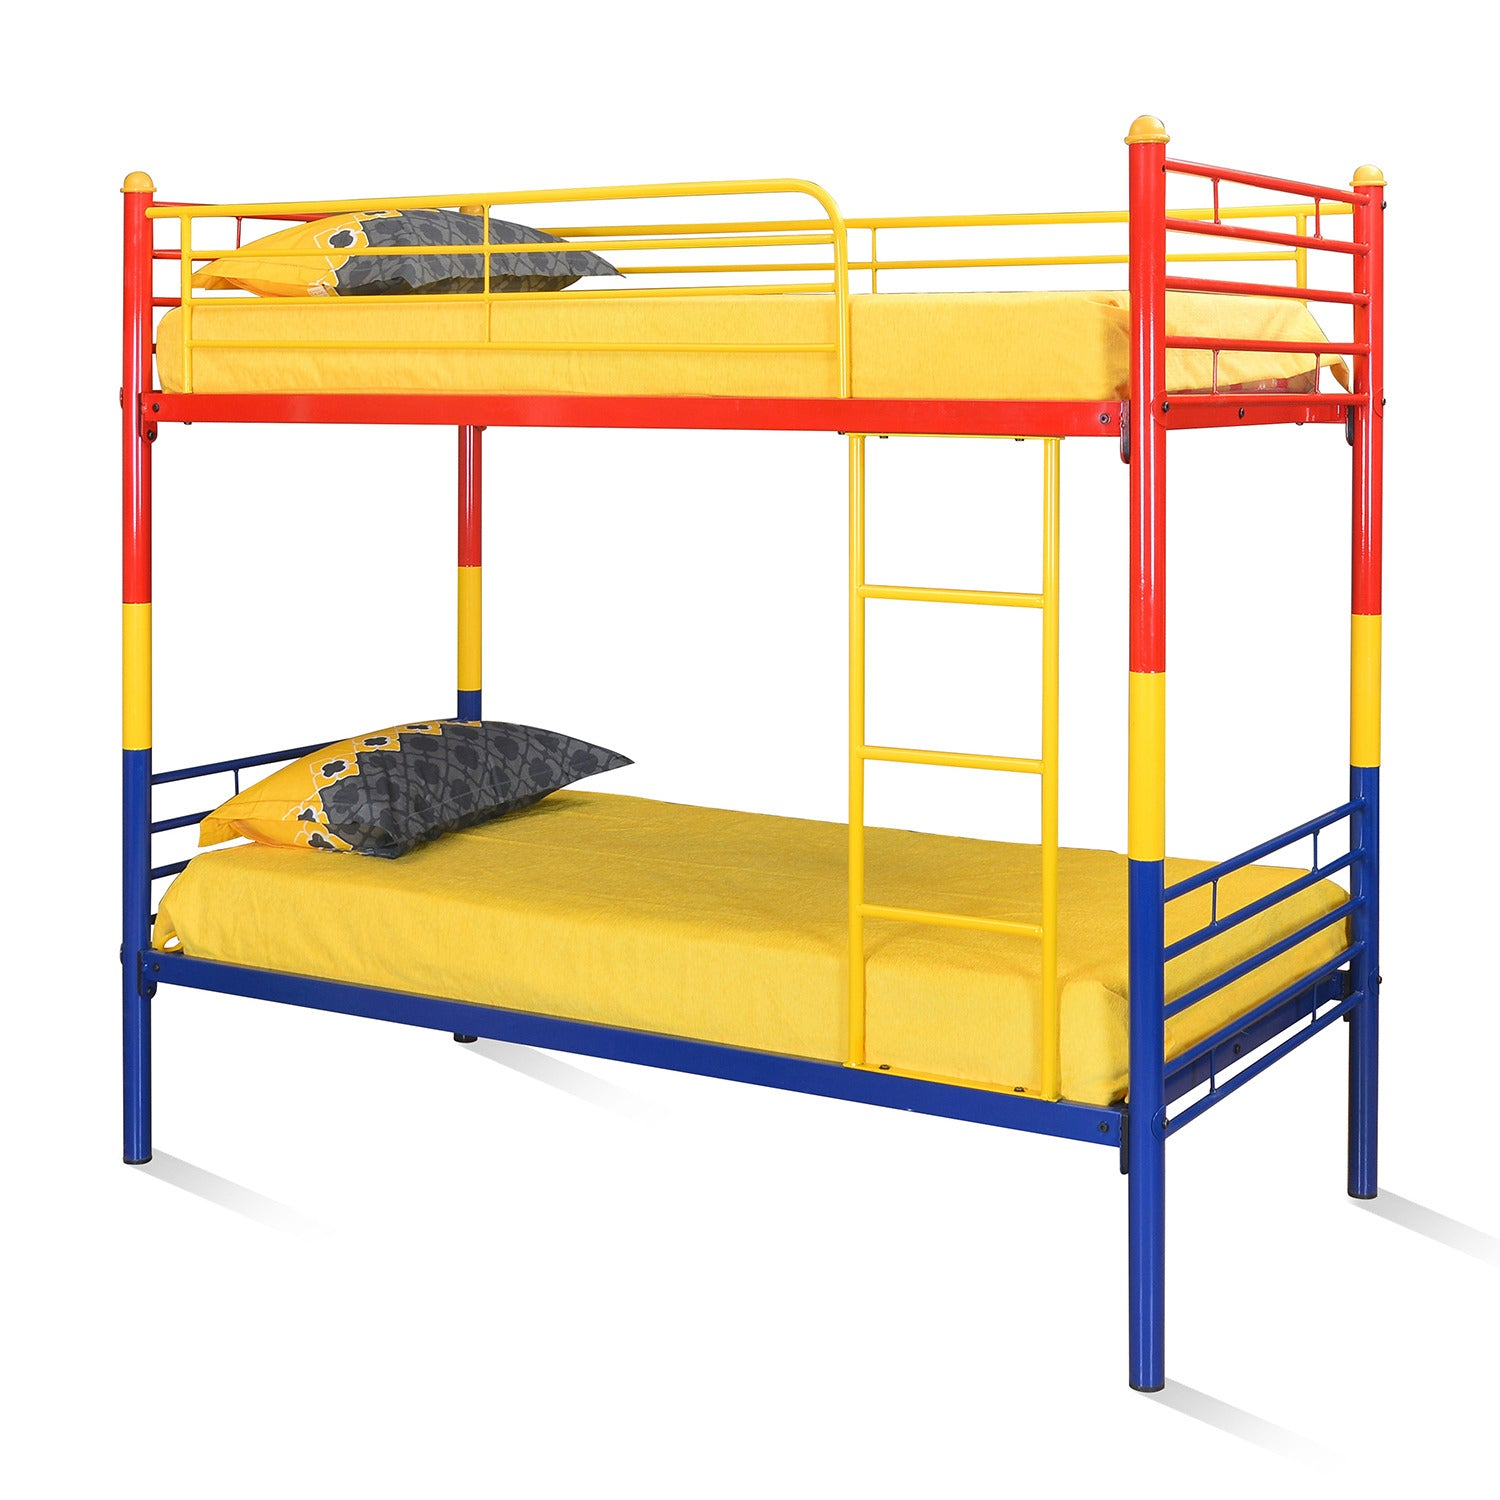 Picture of: Nemo Bunk Bed Without Storage Red Yellow Blue Nilkamal At Home Home